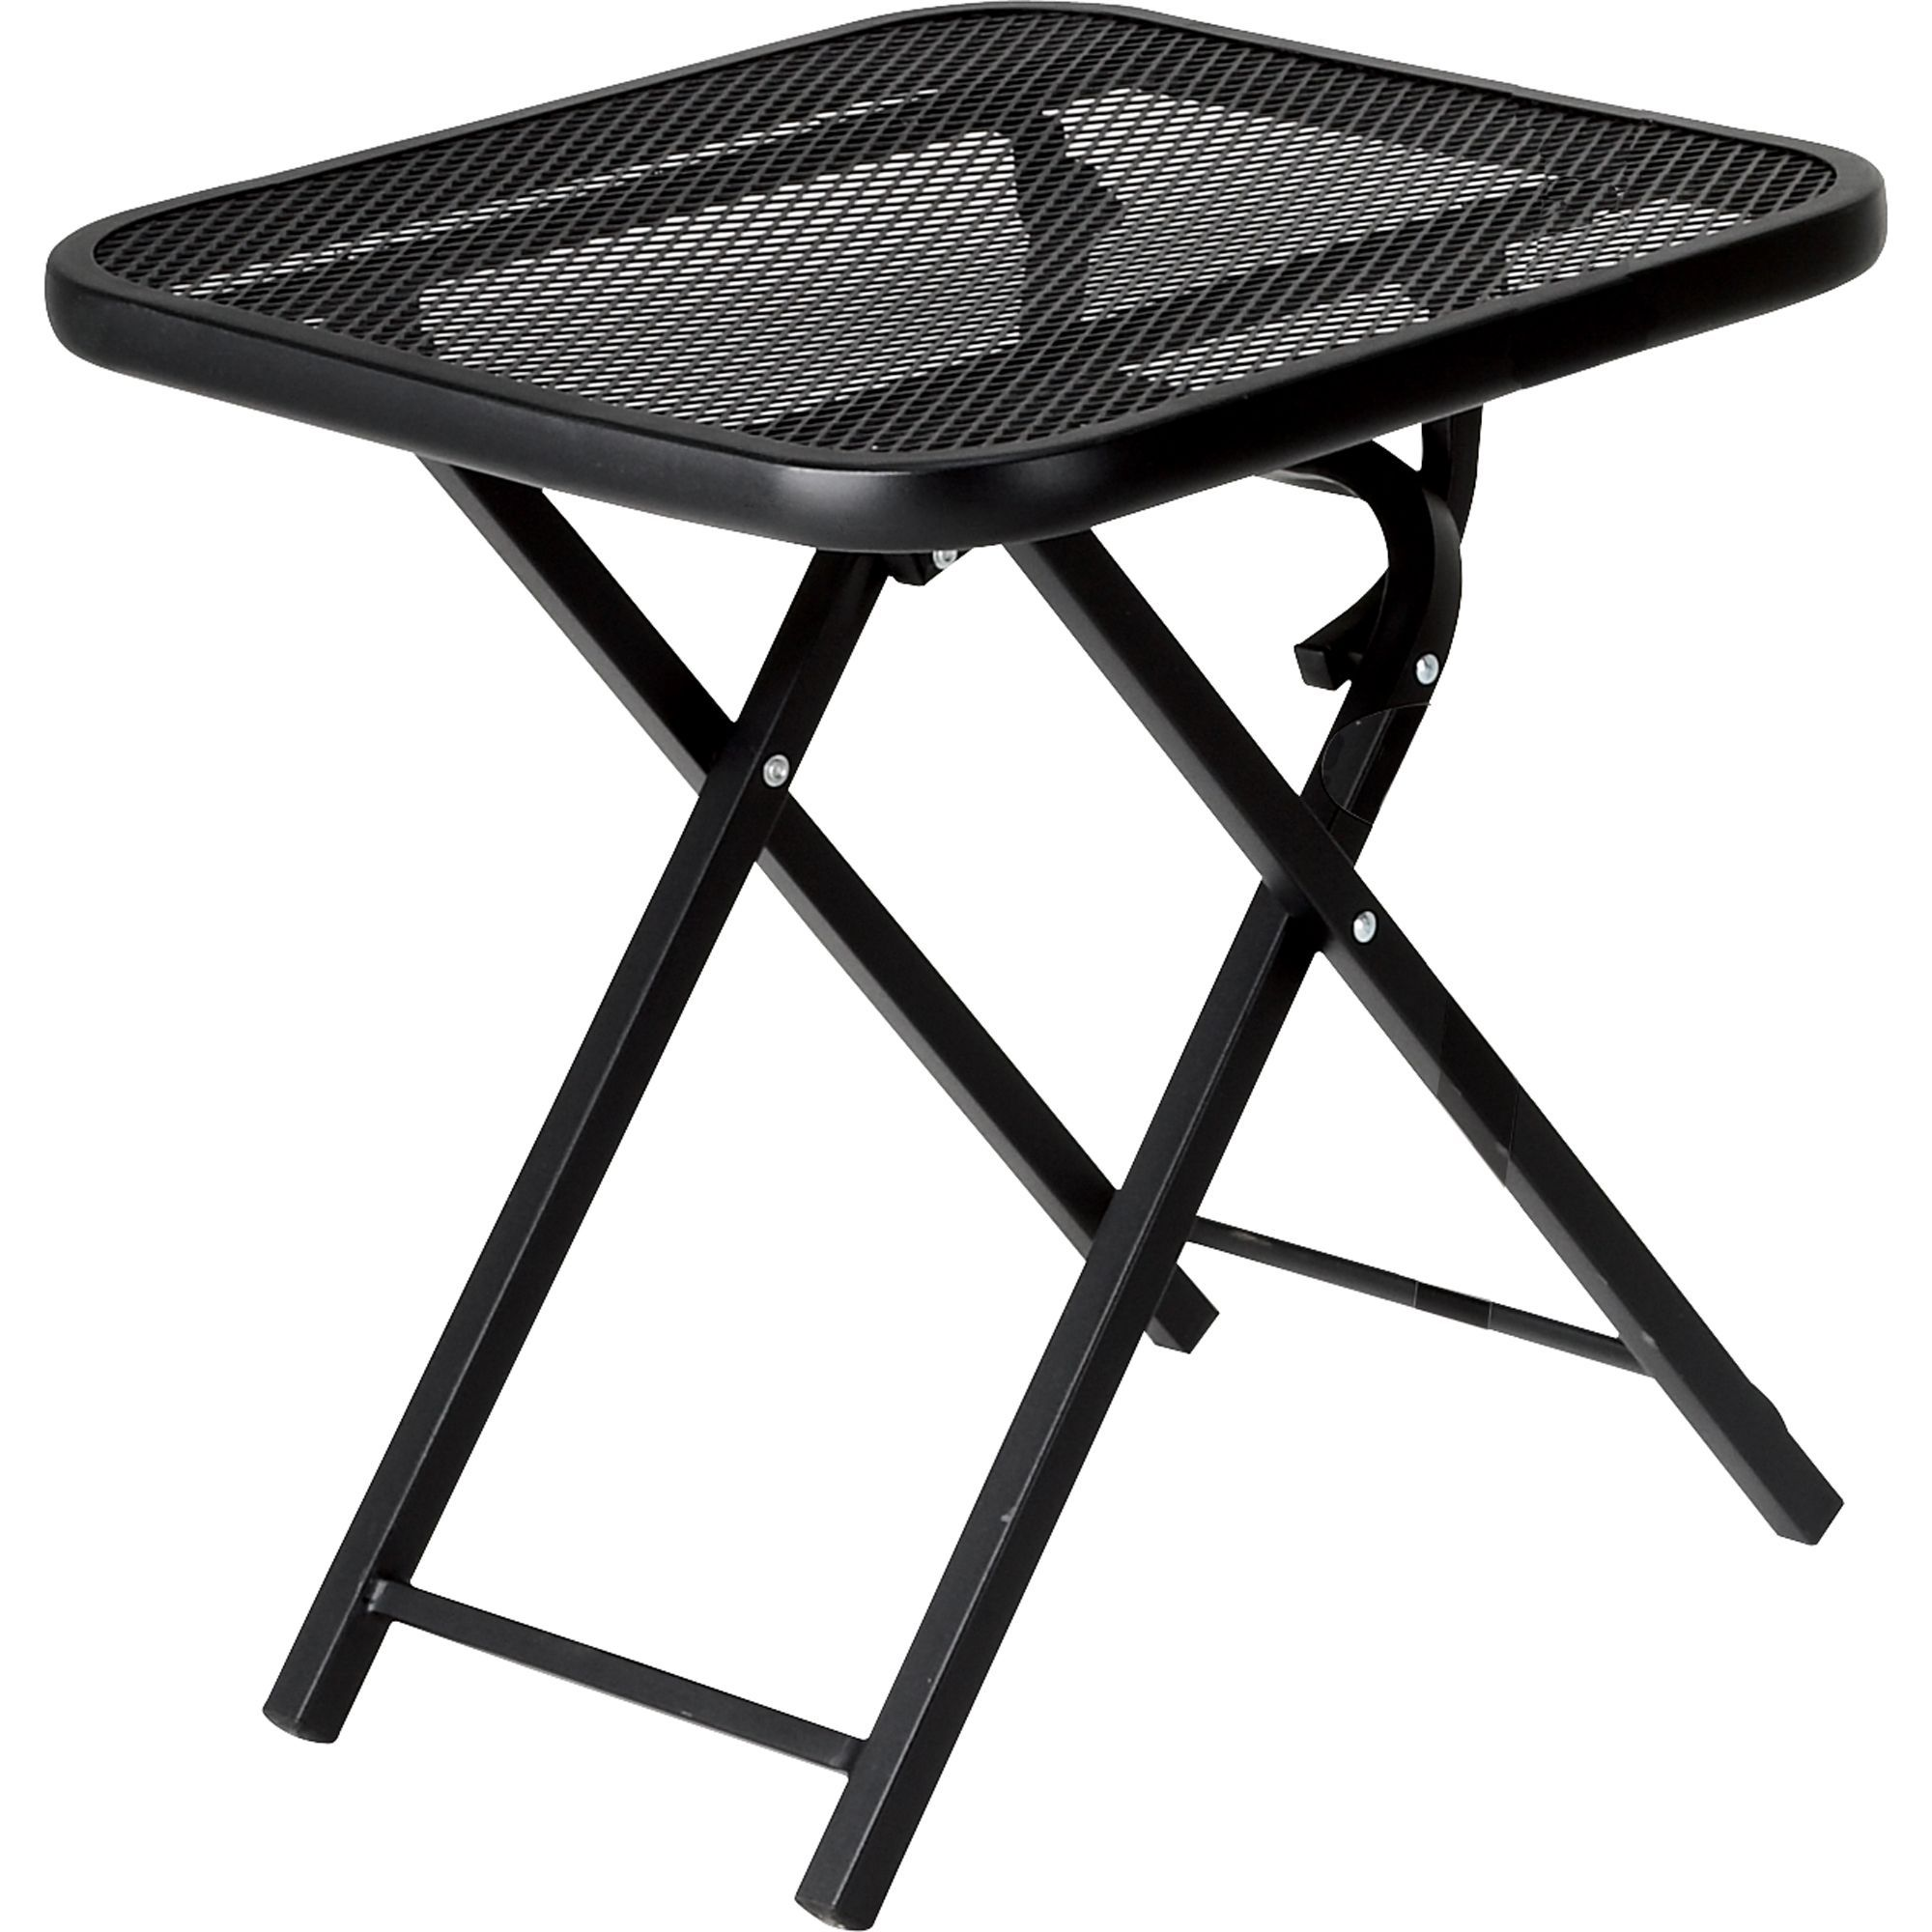 Garden Oasis Wrought Iron Folding Patio Table Outdoor Living